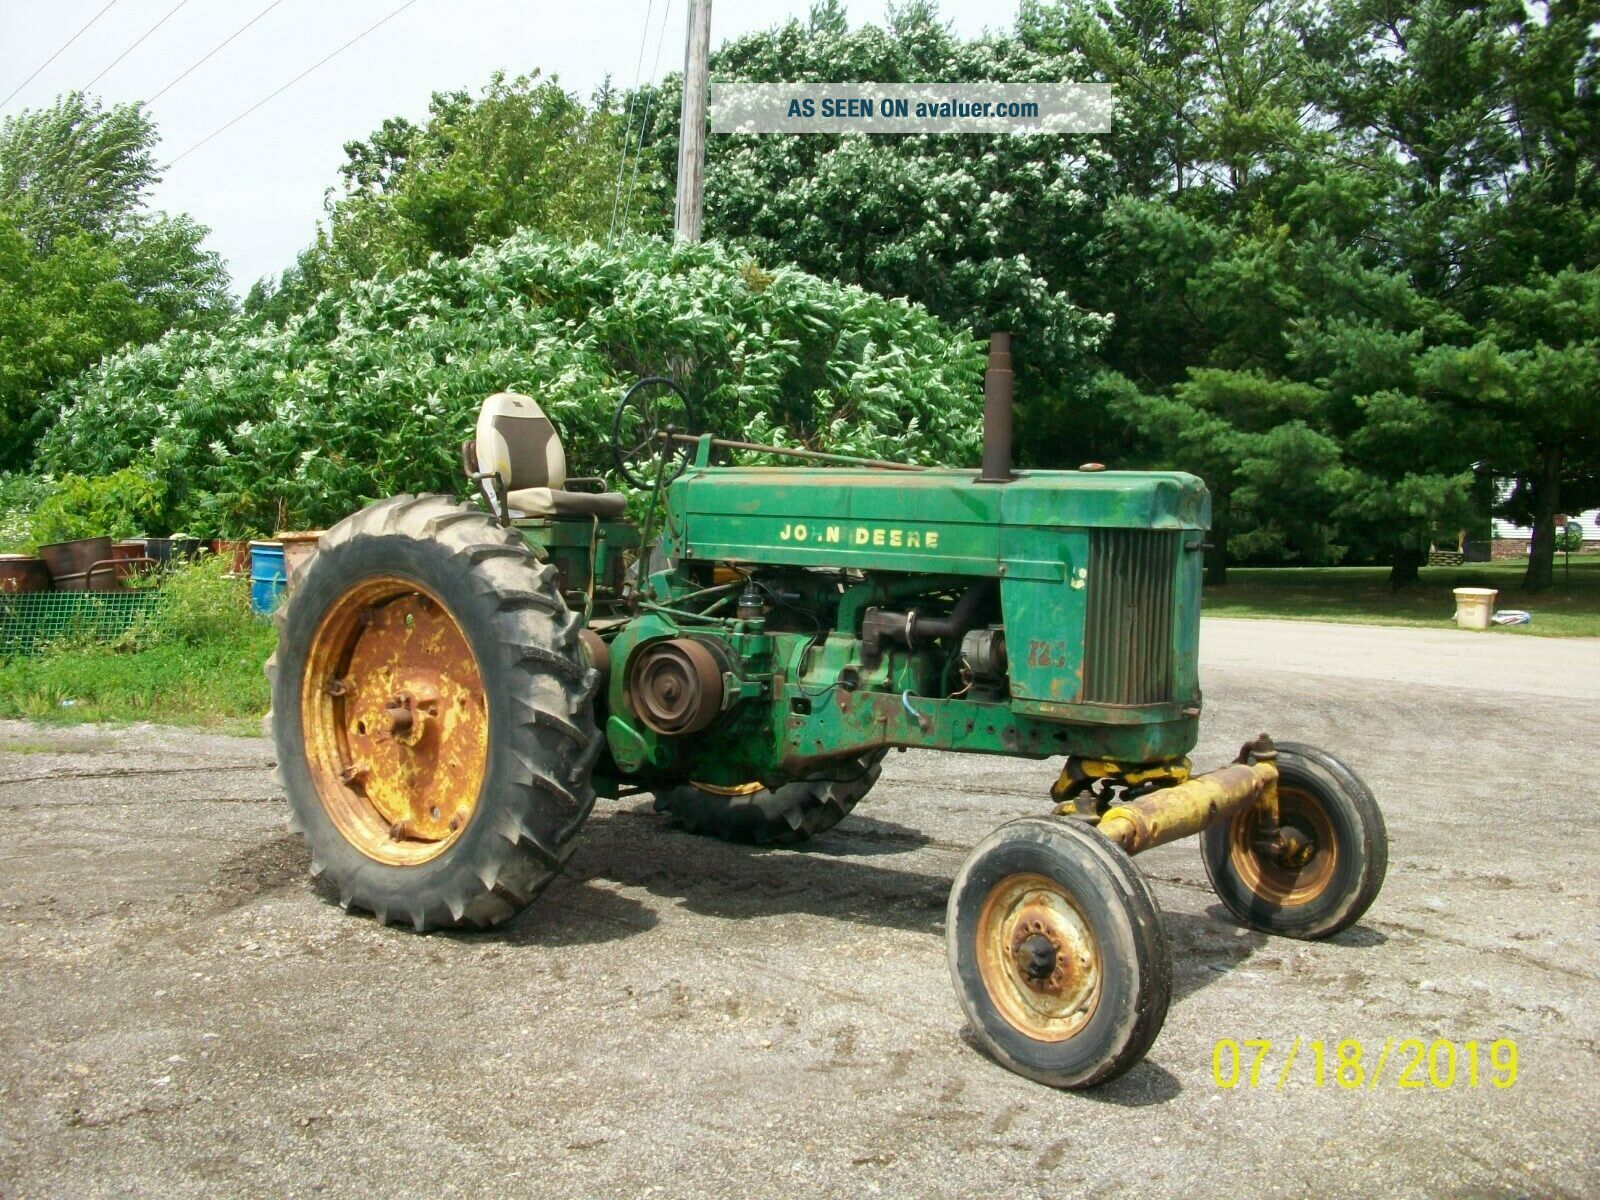 1957 John Deere 720 Gas Antique Tractor Wide Front 3 Point Hitch a b